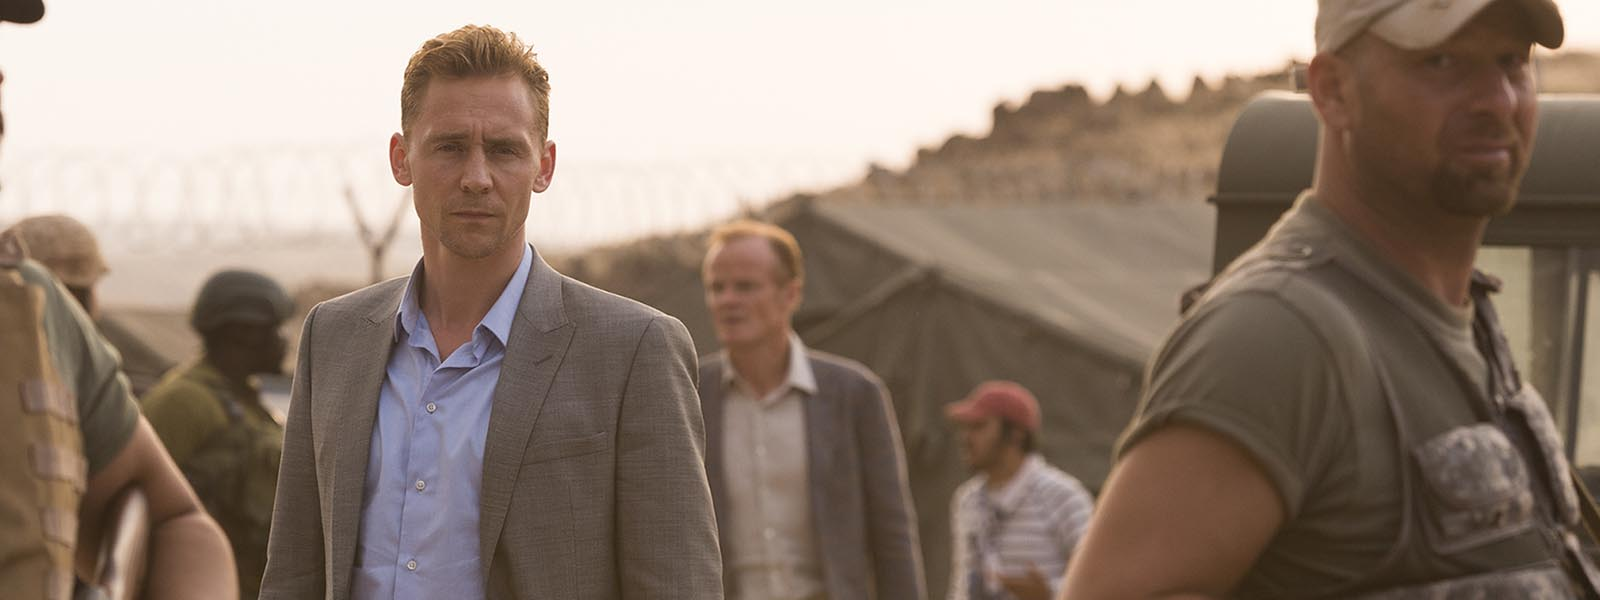 the night manager s01e05 download